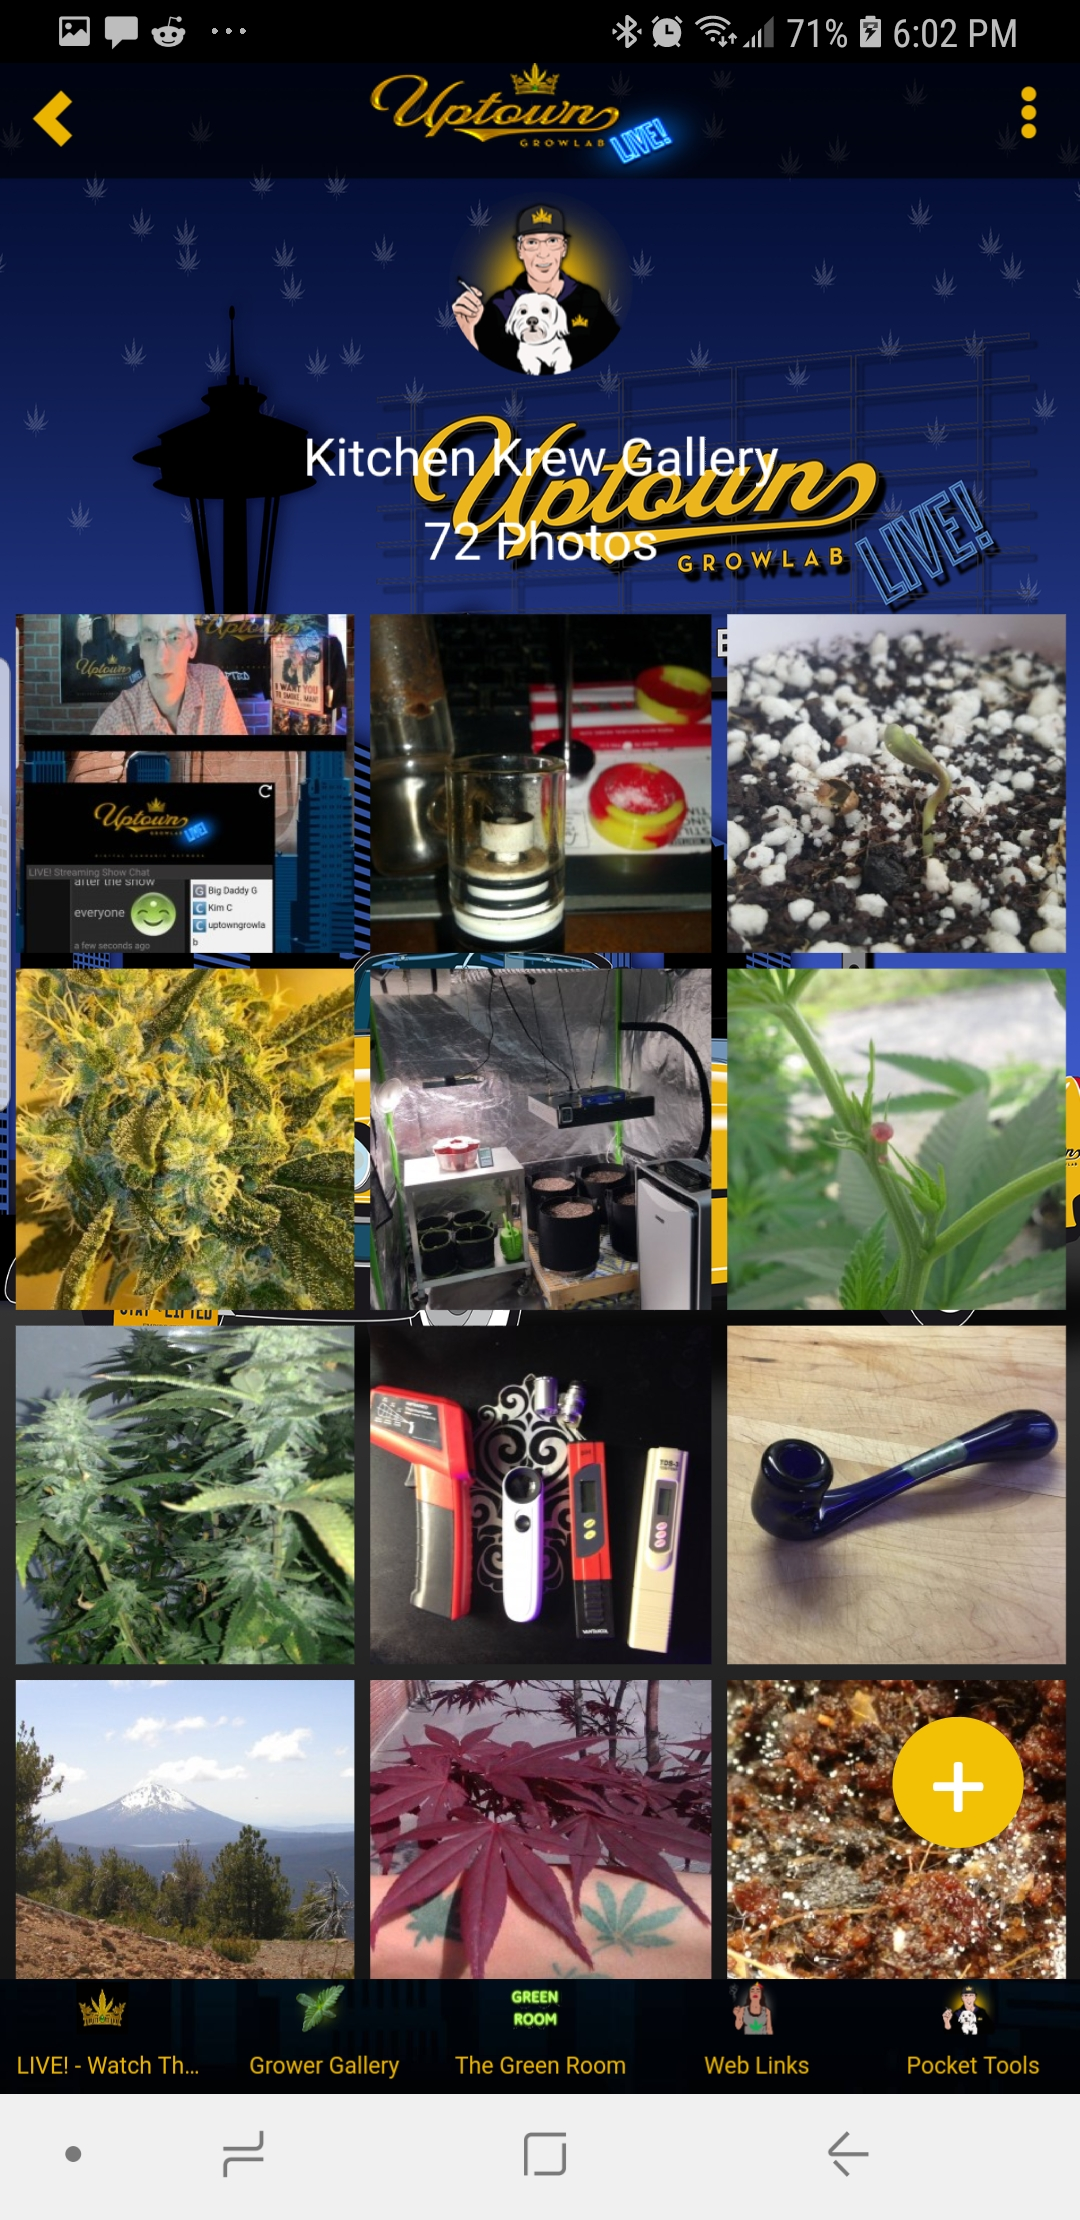 Grower Gallery - Kitchen Krew User submissions